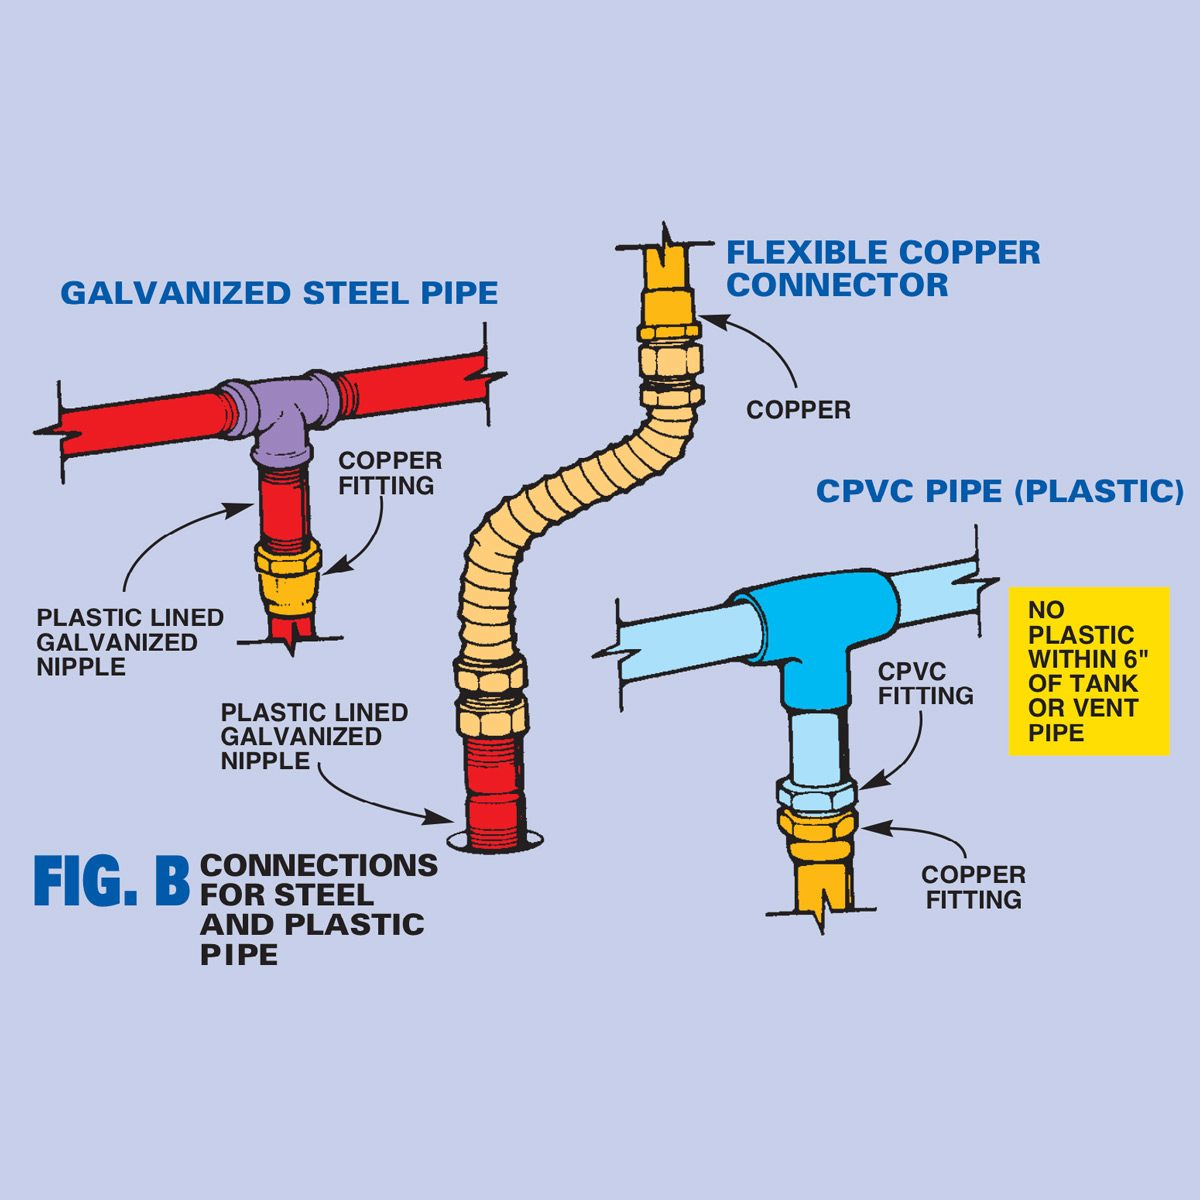 hight resolution of figure b connections for steel and plastic pipe